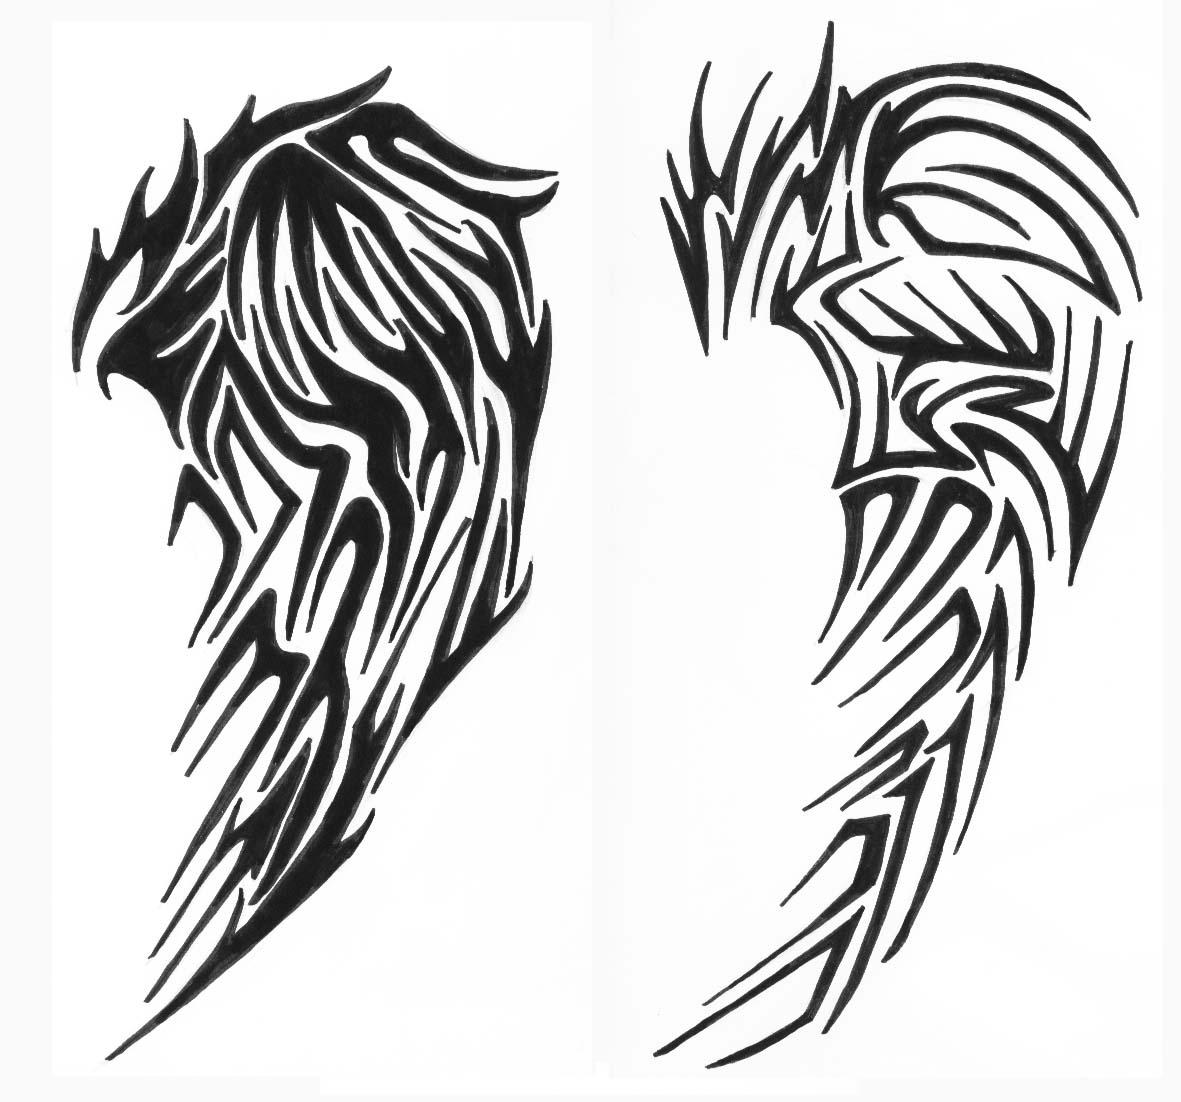 images of tribal wings 2 by vexed jesus on deviantart wallpaper